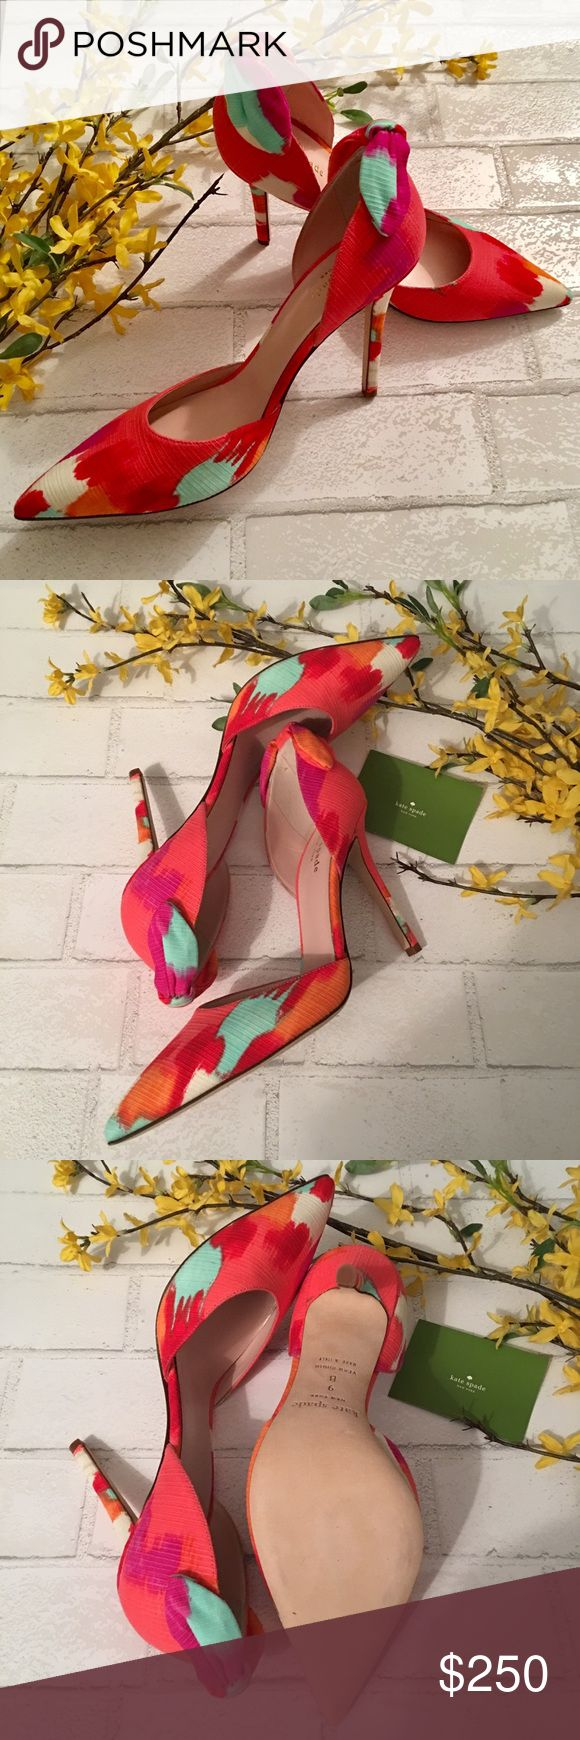 Kate Spade Lula Water Color Heels NIB Kate Spade Lula Water Color Heels NIB. Size 9. Comes Brand new in box with original packing and dustbag. Never worn in perfect condition. All pictures taken by me of the actual shoes. Price is Firm Unless Bundled. kate spade Shoes Heels